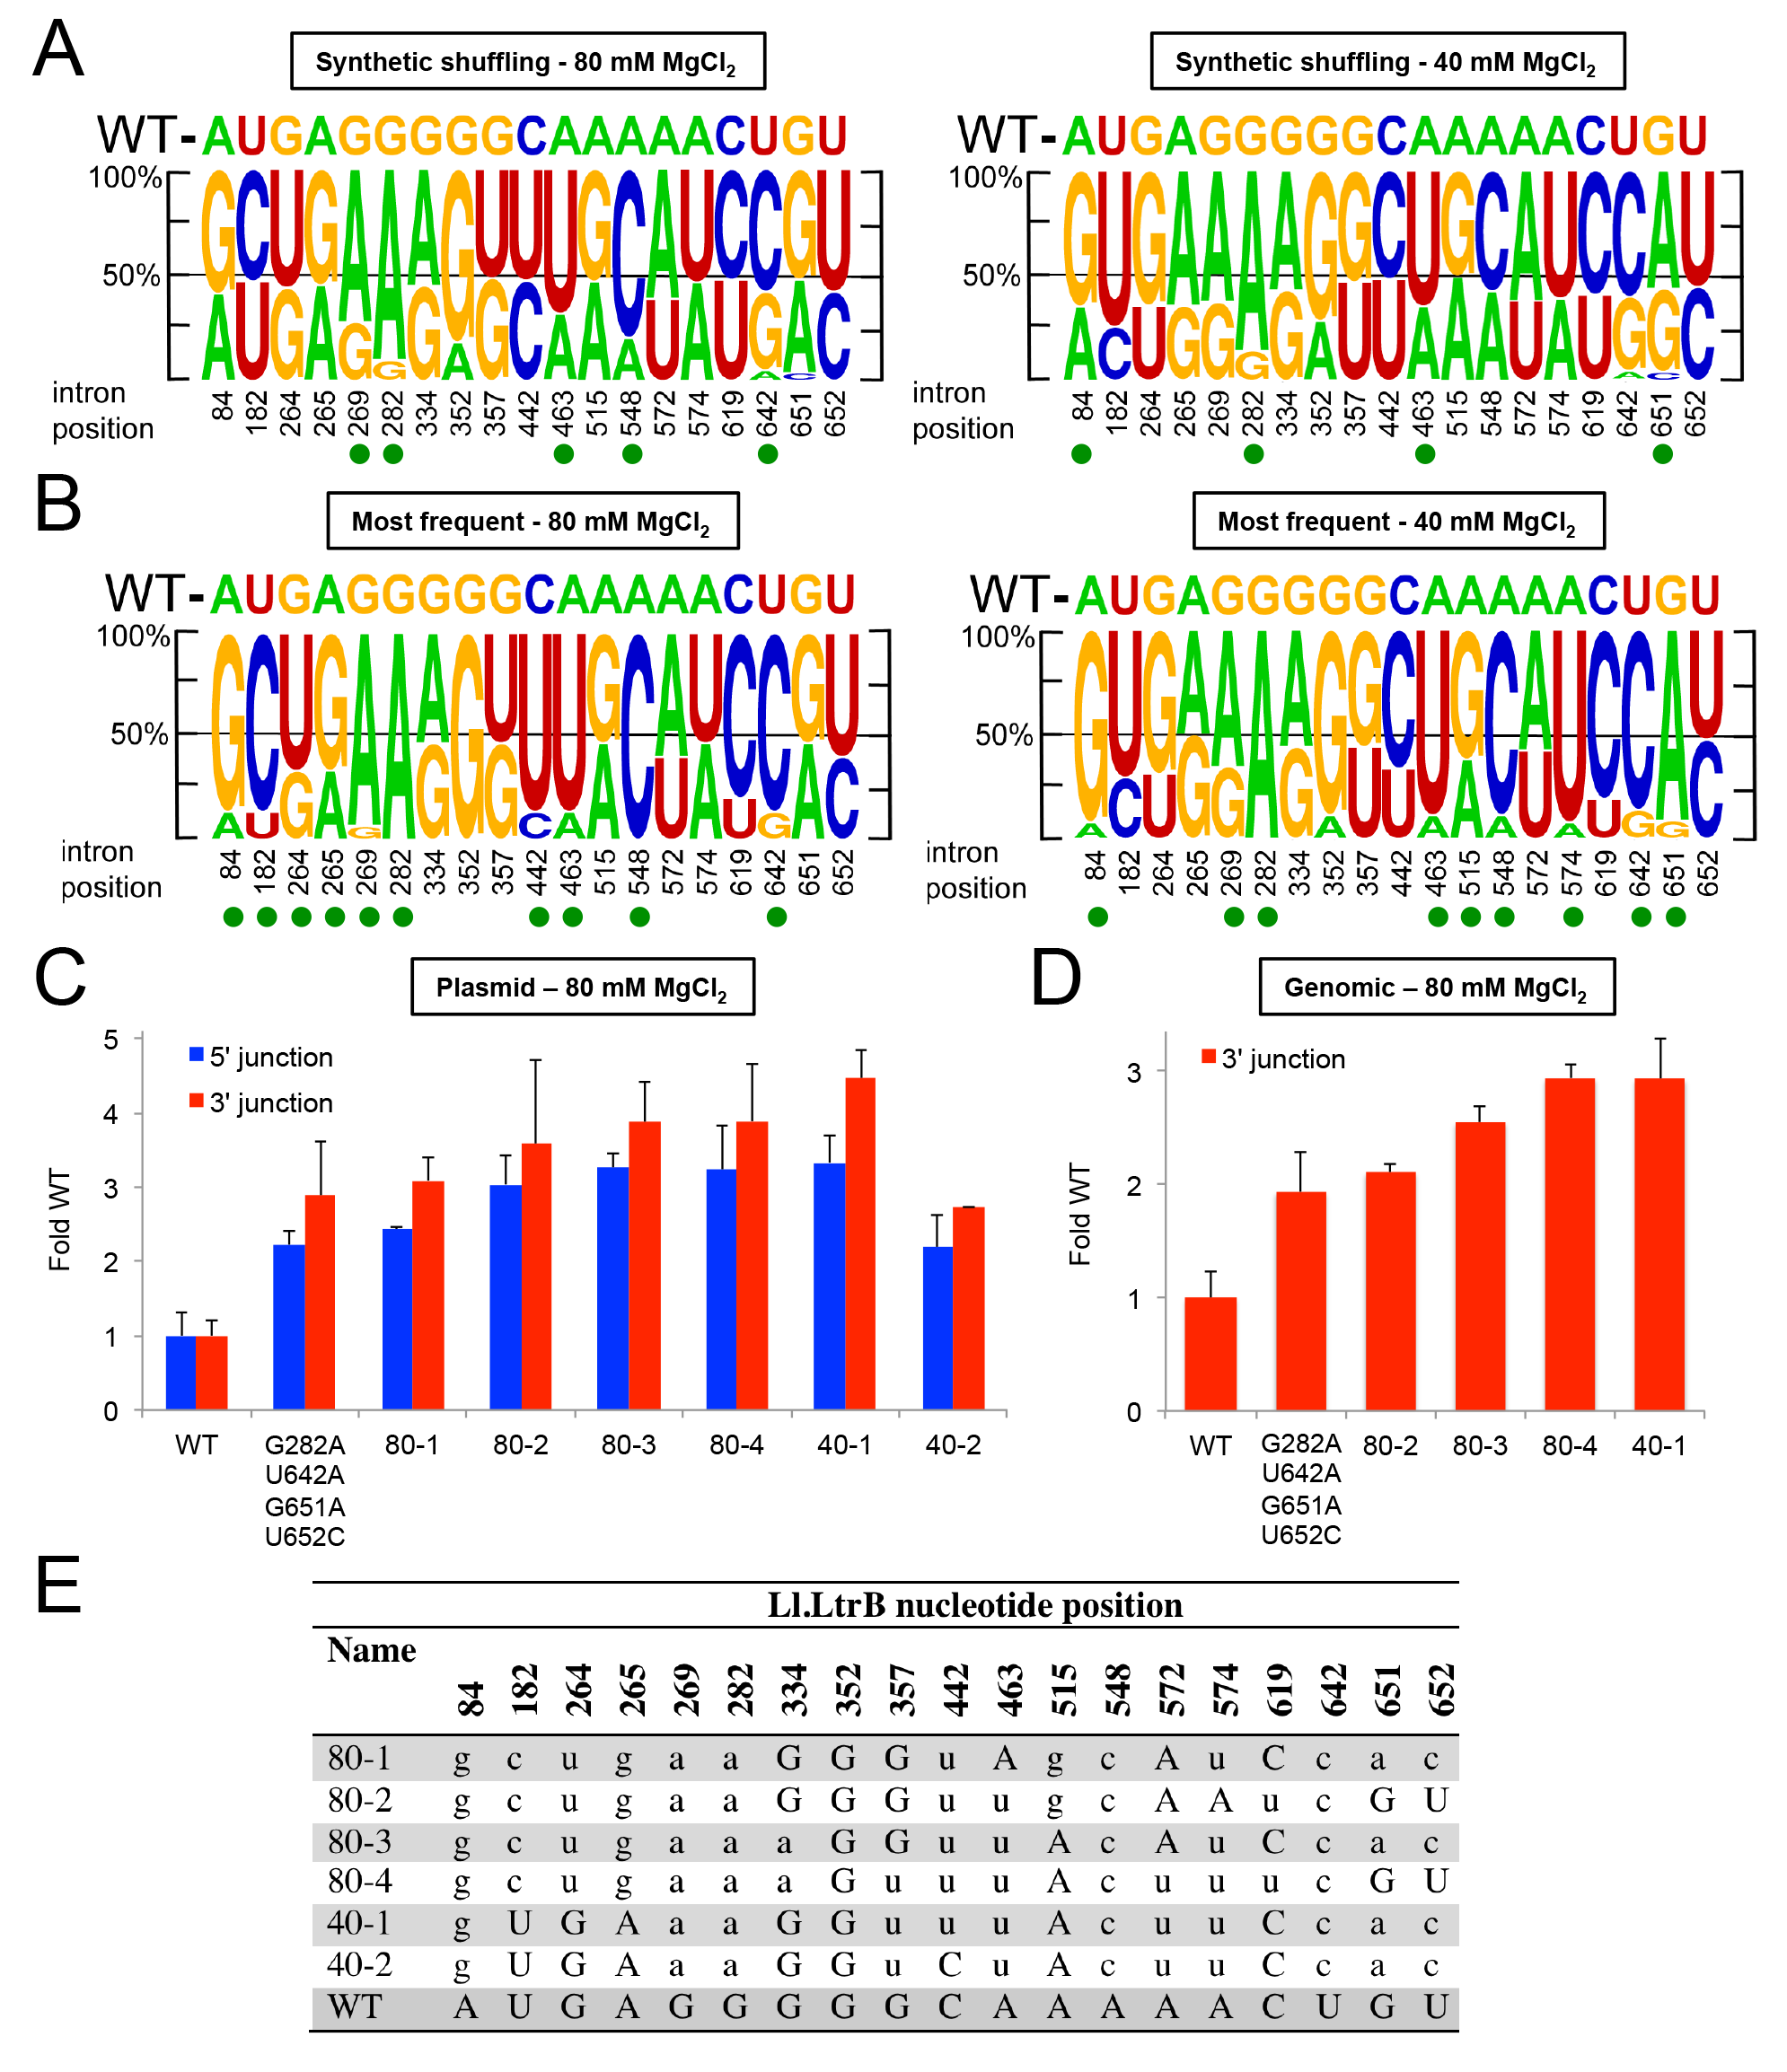 Synthetic shuffling of positively selected mutations identifies Ll.LtrB variants with enhanced retrohoming into plasmid and chromosomal target sites in human cells.